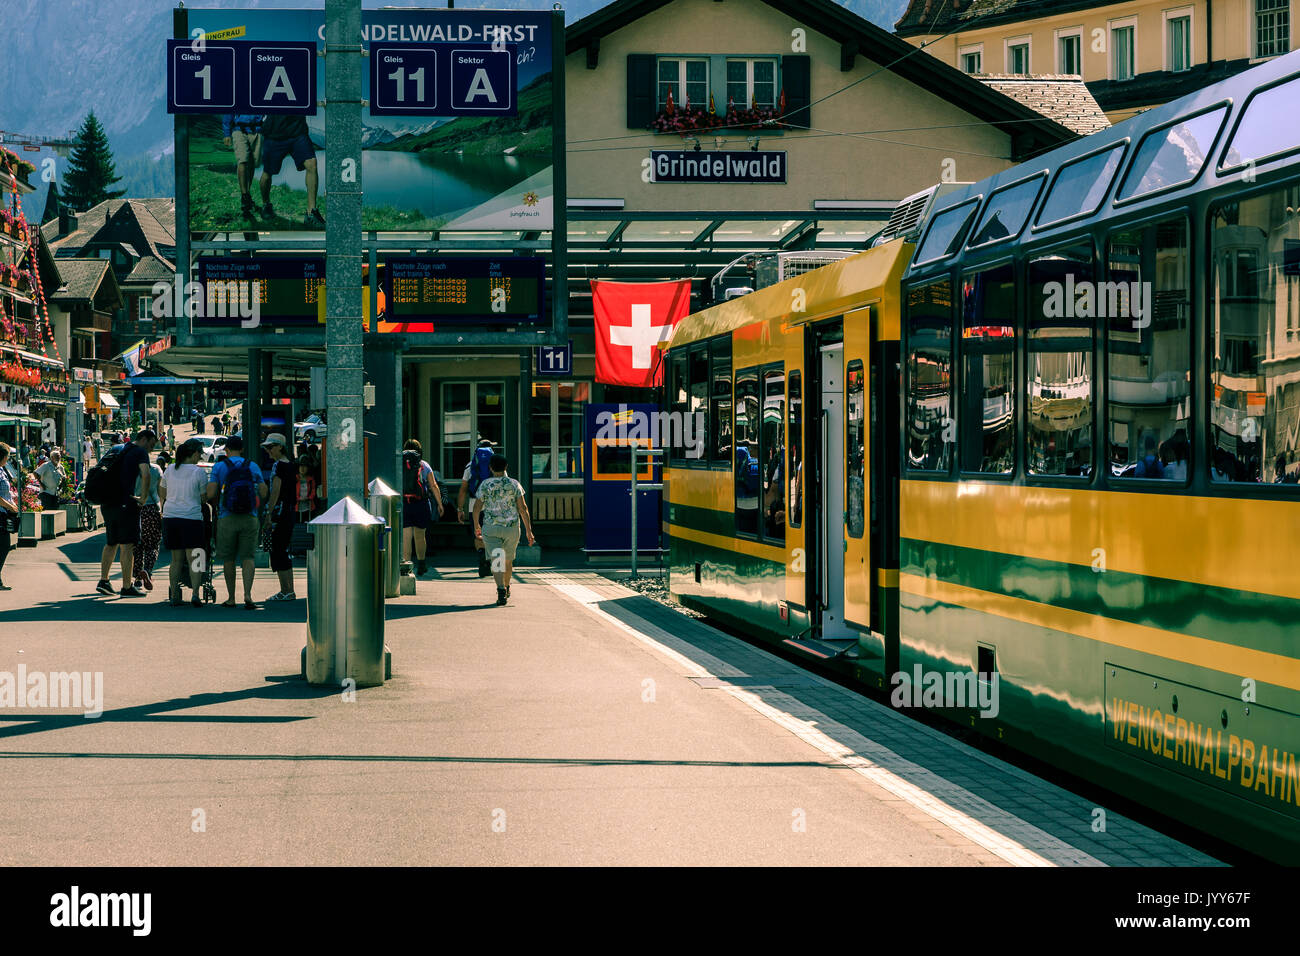 Grindelwald, Bernese Oberland, Switzerland - AUGUST 1, 2017 : Yellow - Green train from the Wengernalpbahn in the Grindelwald railway station - Stock Image